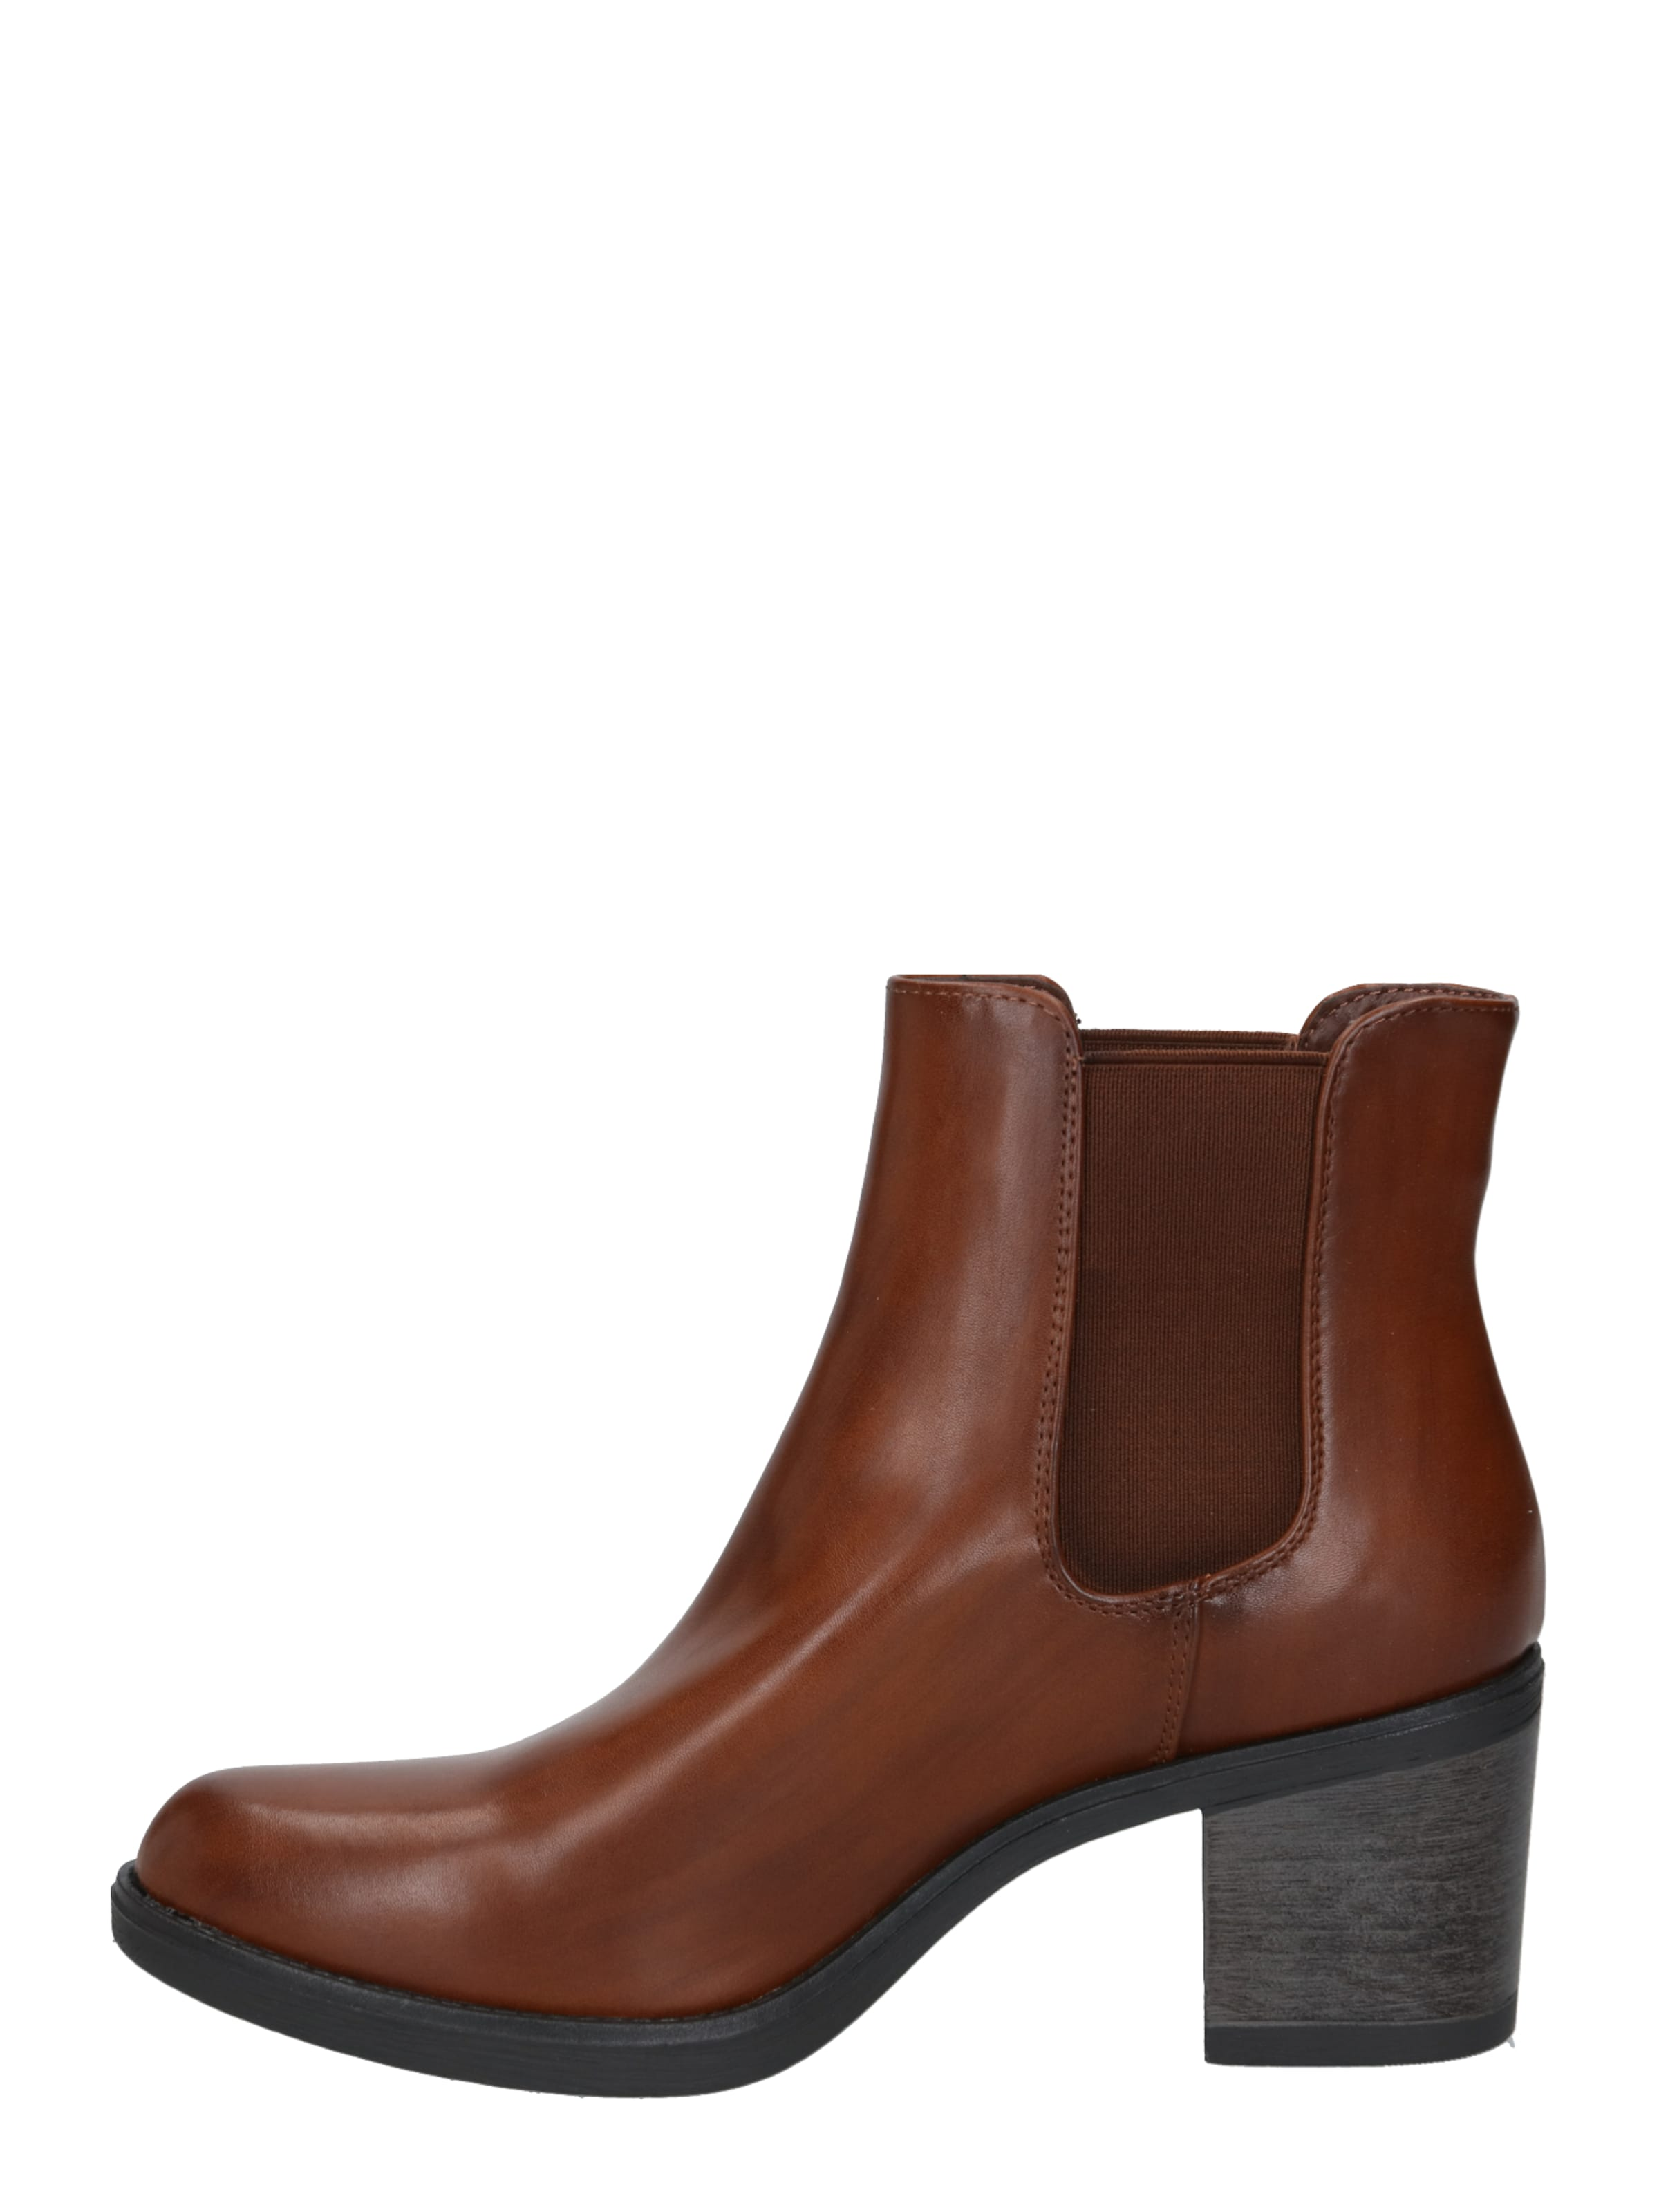 TOM TAILOR DENIM Chelsea boots i karamell